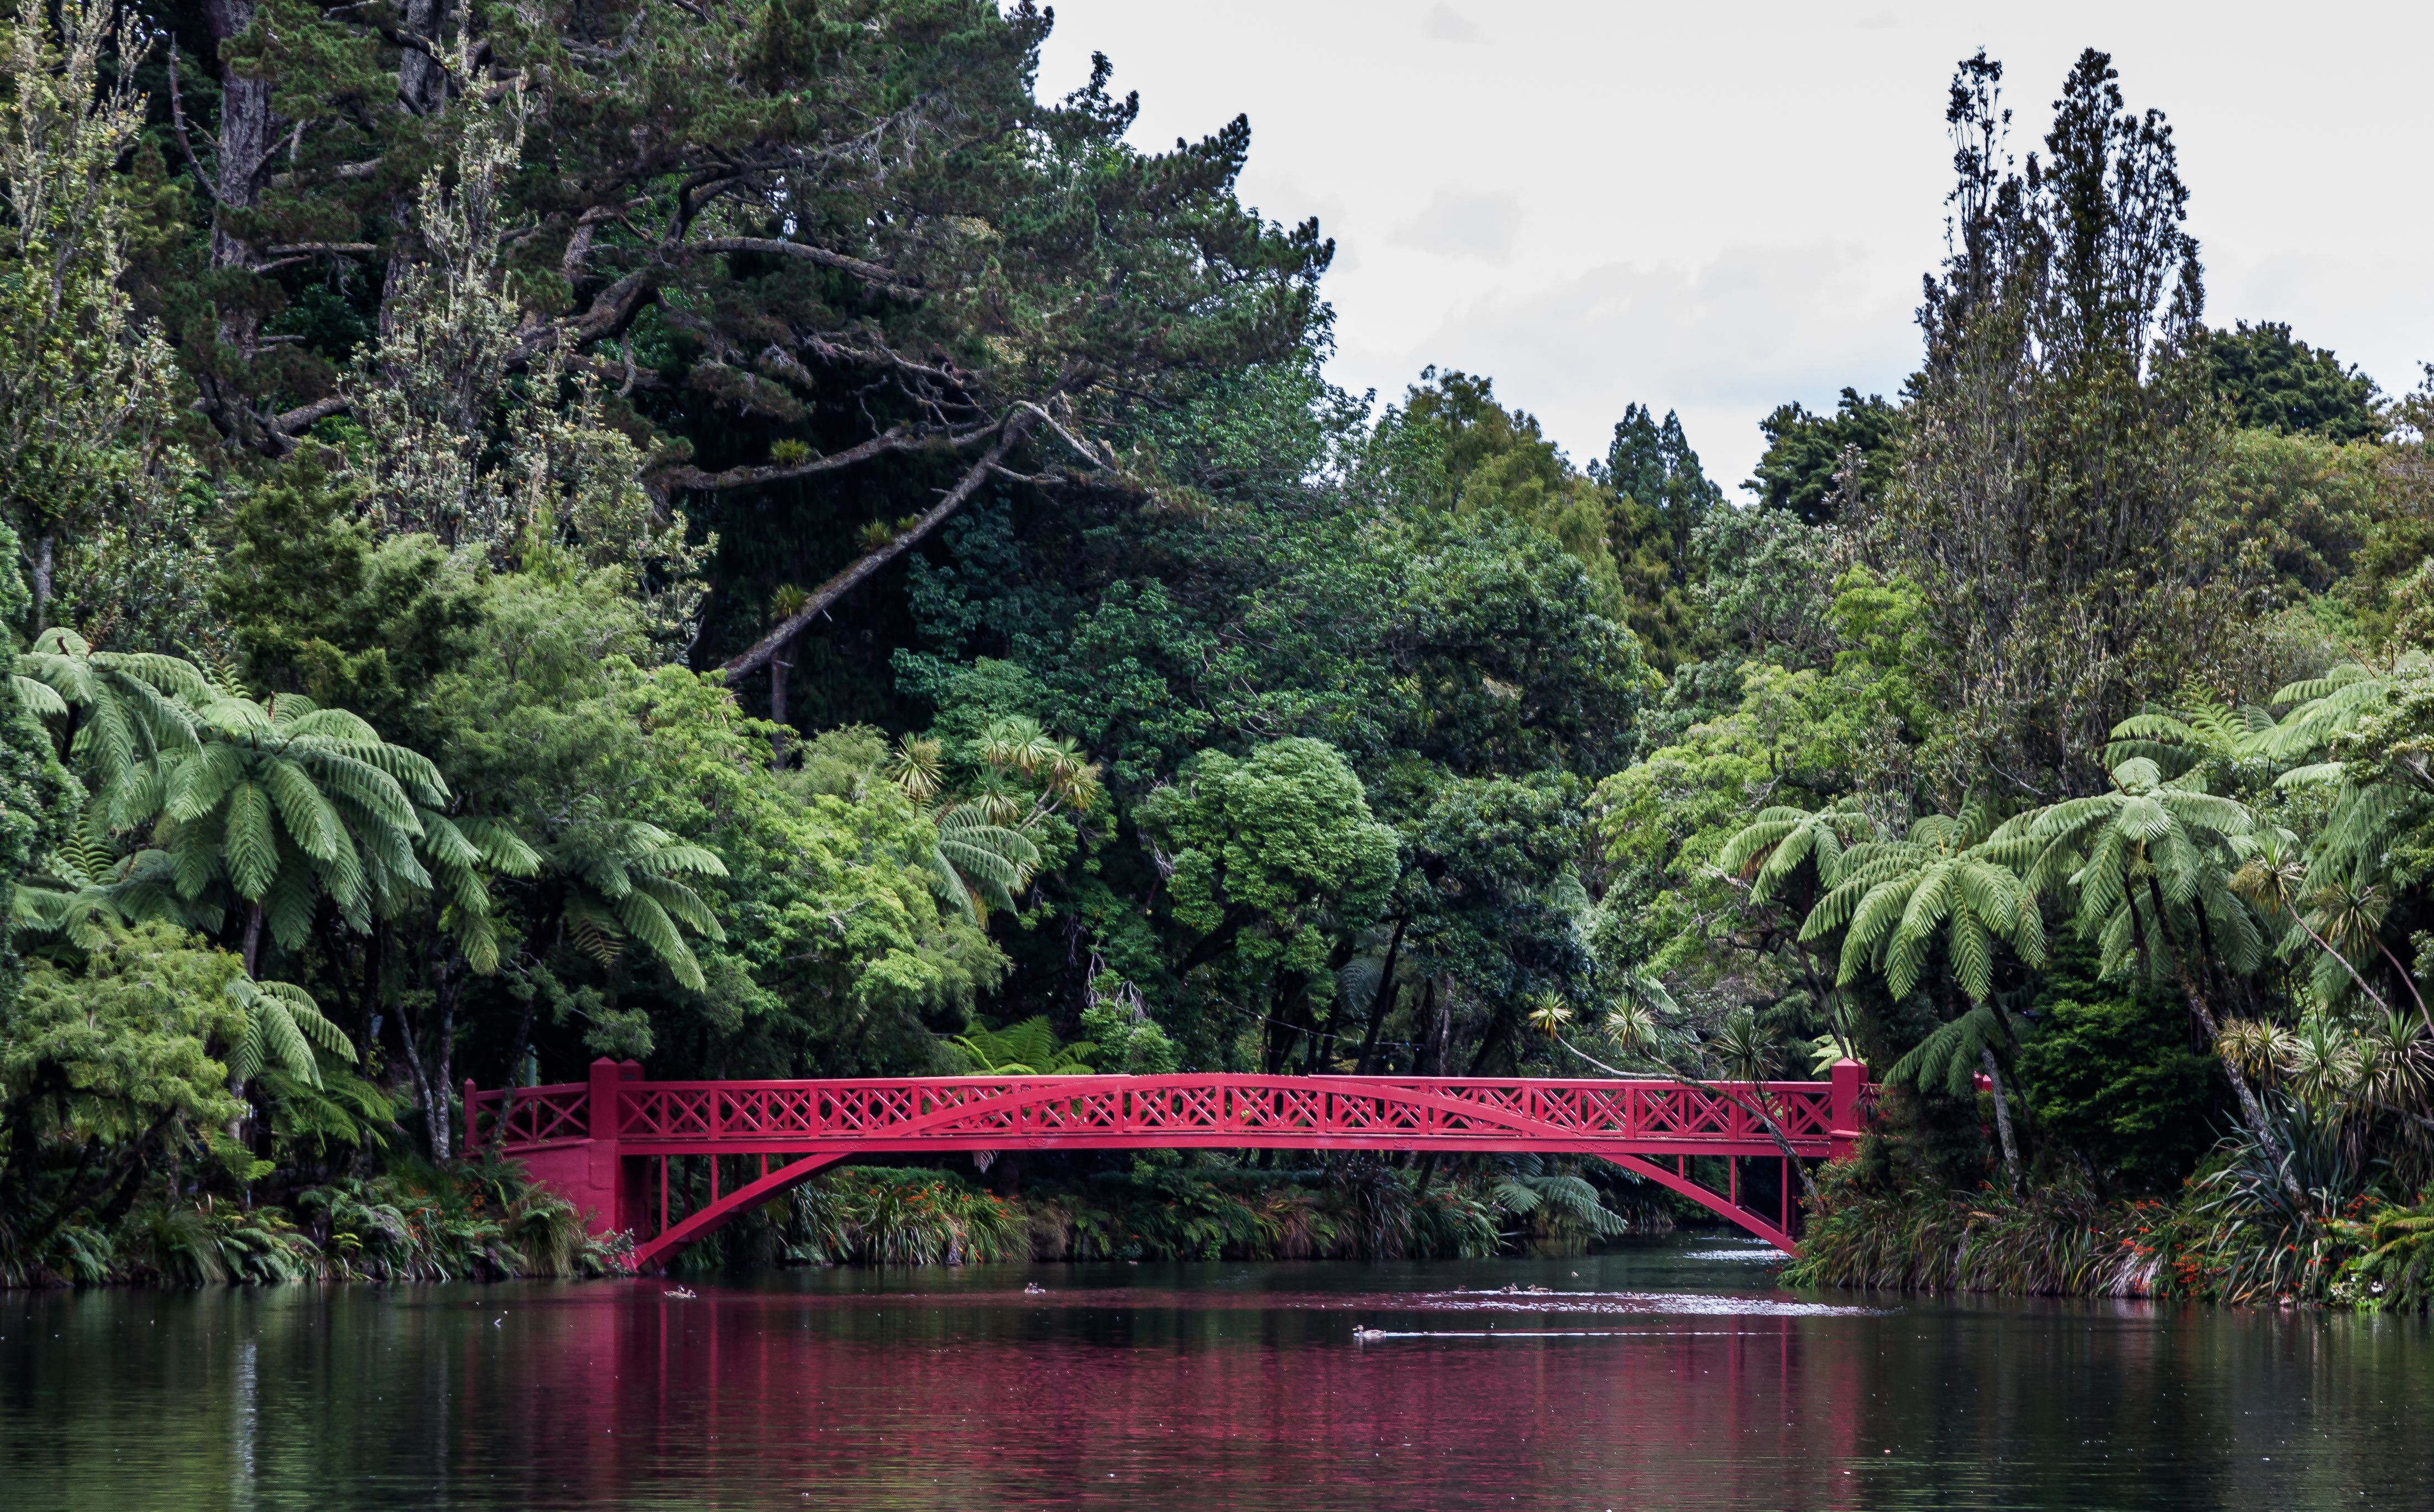 Poet S Bridge Pukekura Park New Plymouth Taranaki